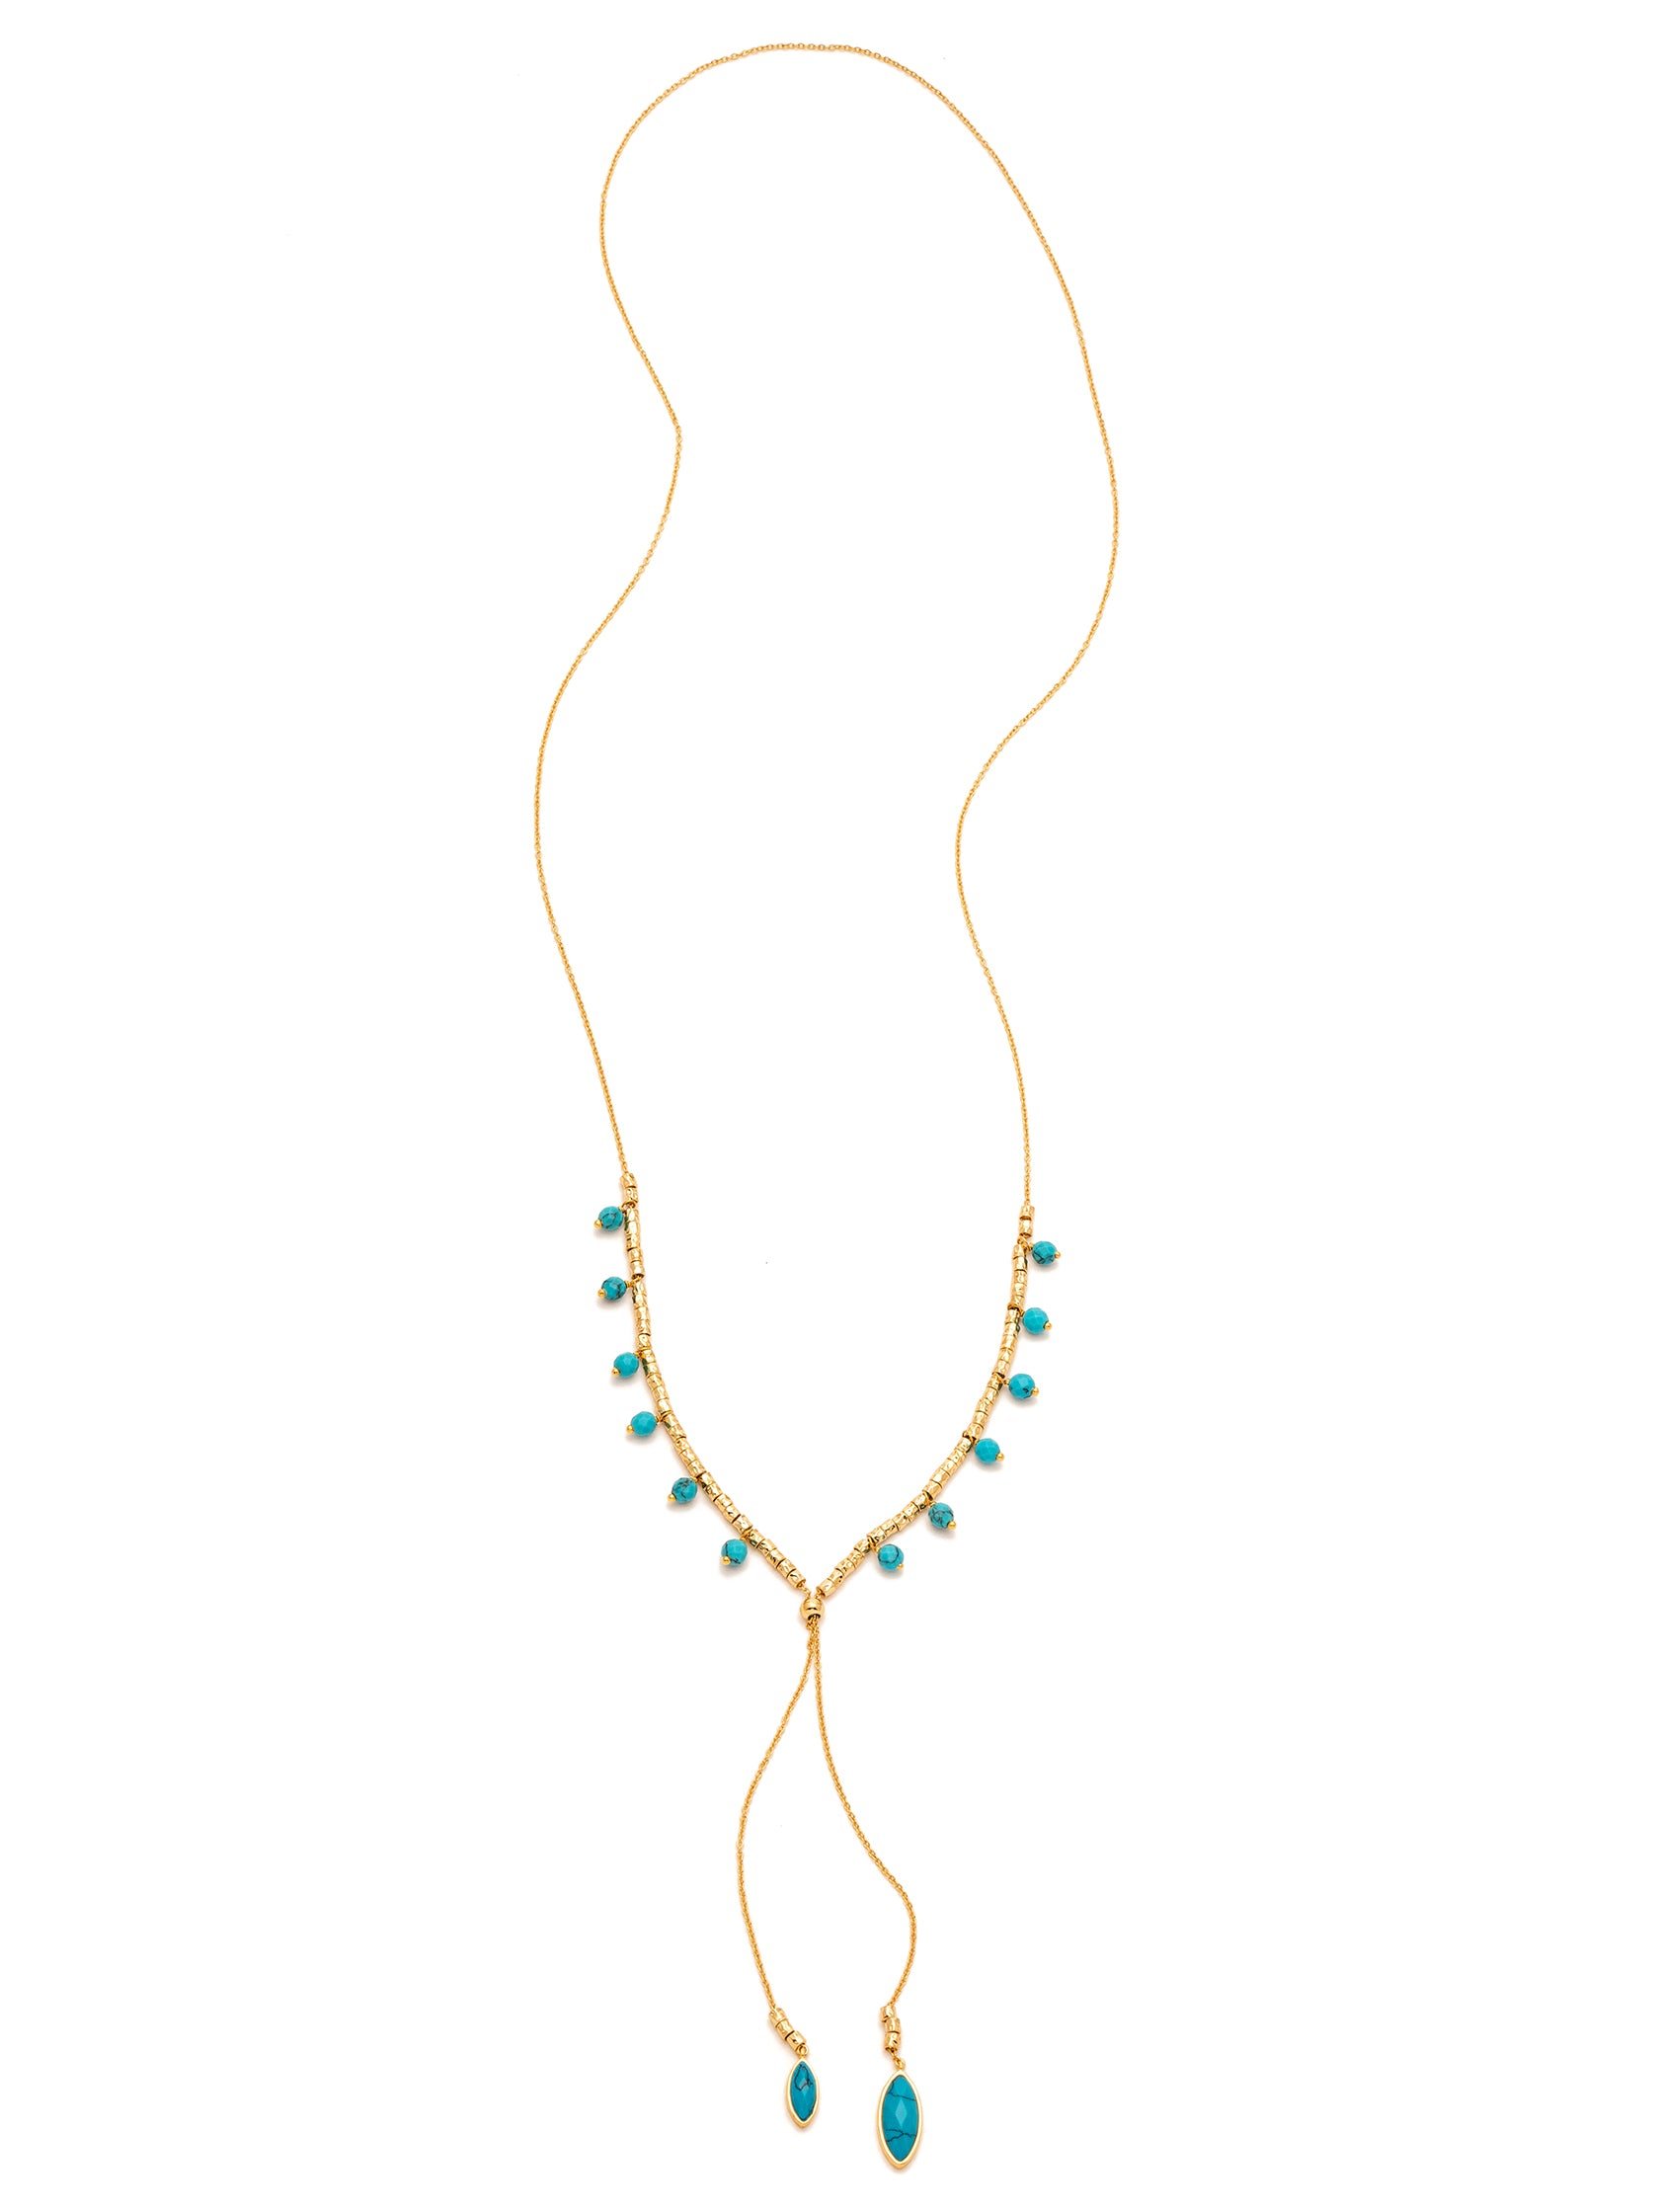 Woman wearing a necklace rental from Gorjana called Palisades Turquoise Versatile Necklace